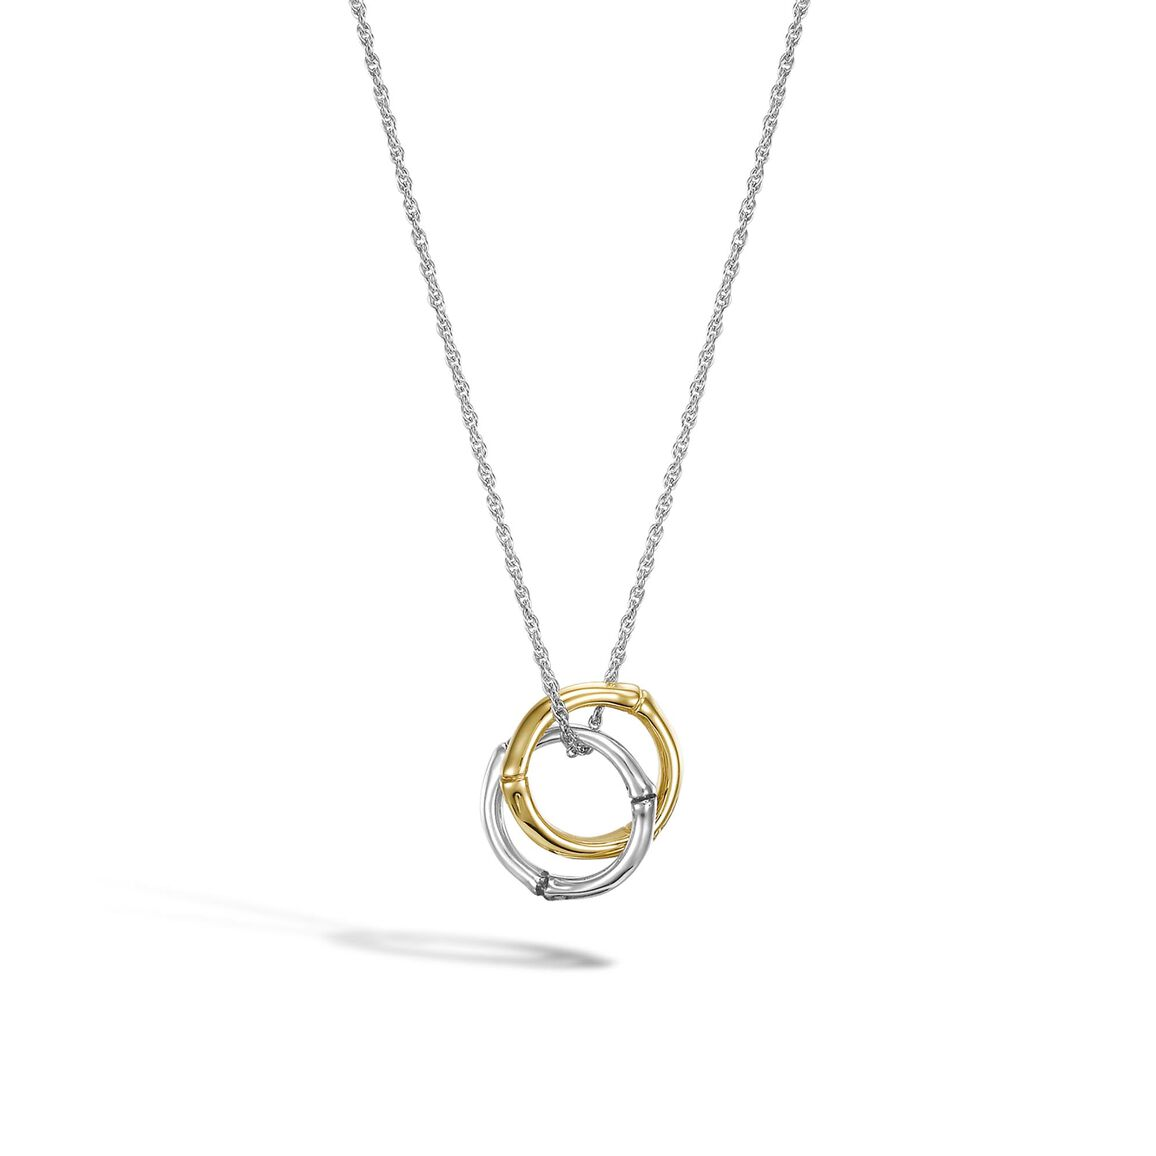 Bamboo Interlinking Pendant Necklace in Silver and 18K Gold